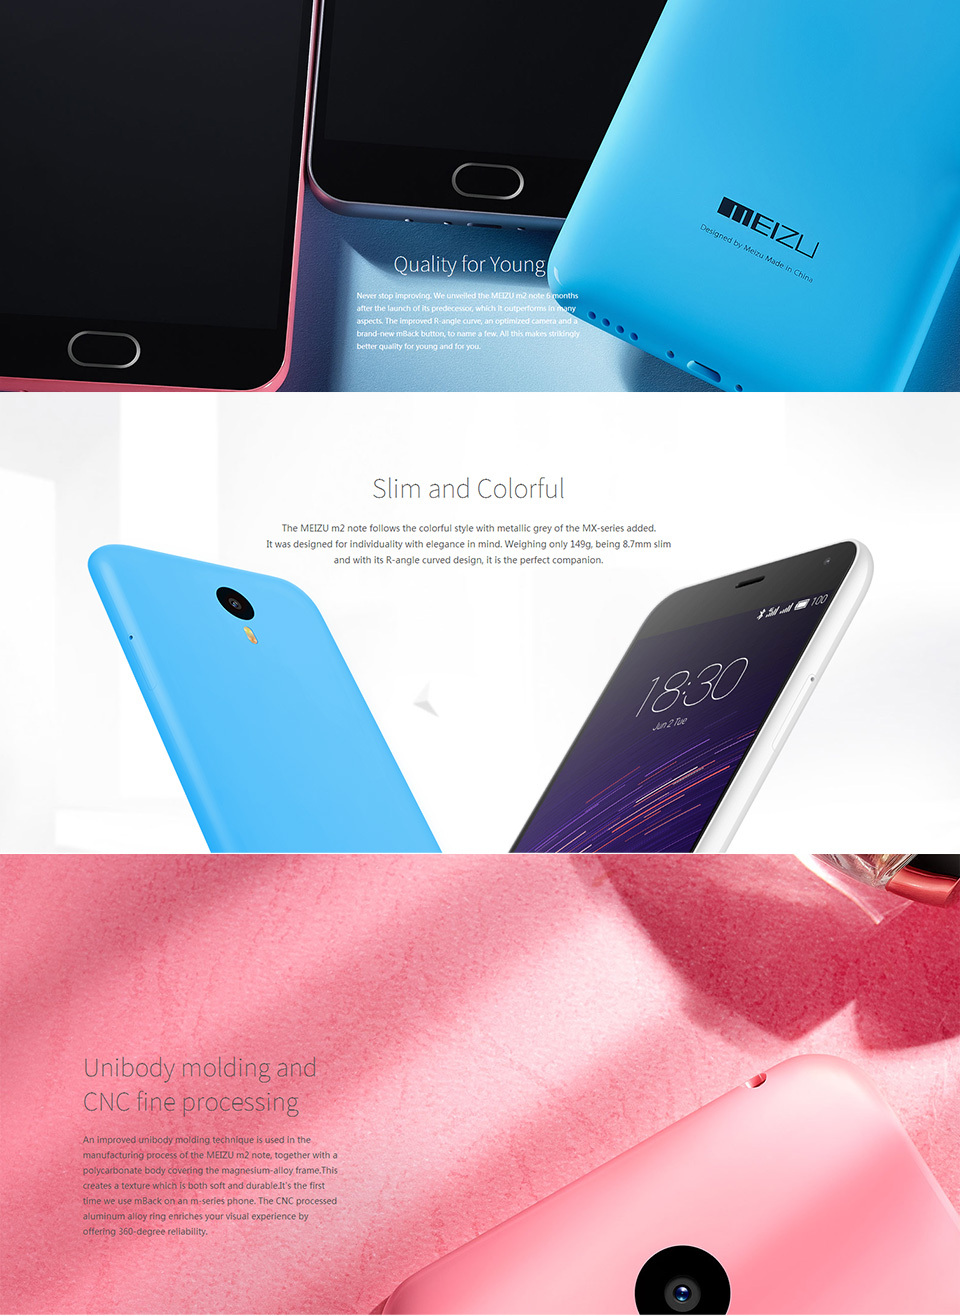 EU Stock, 100% Original Unlocked Wholesale Mobile Phones 16GB Meizu M2 Note Google Nexus 5